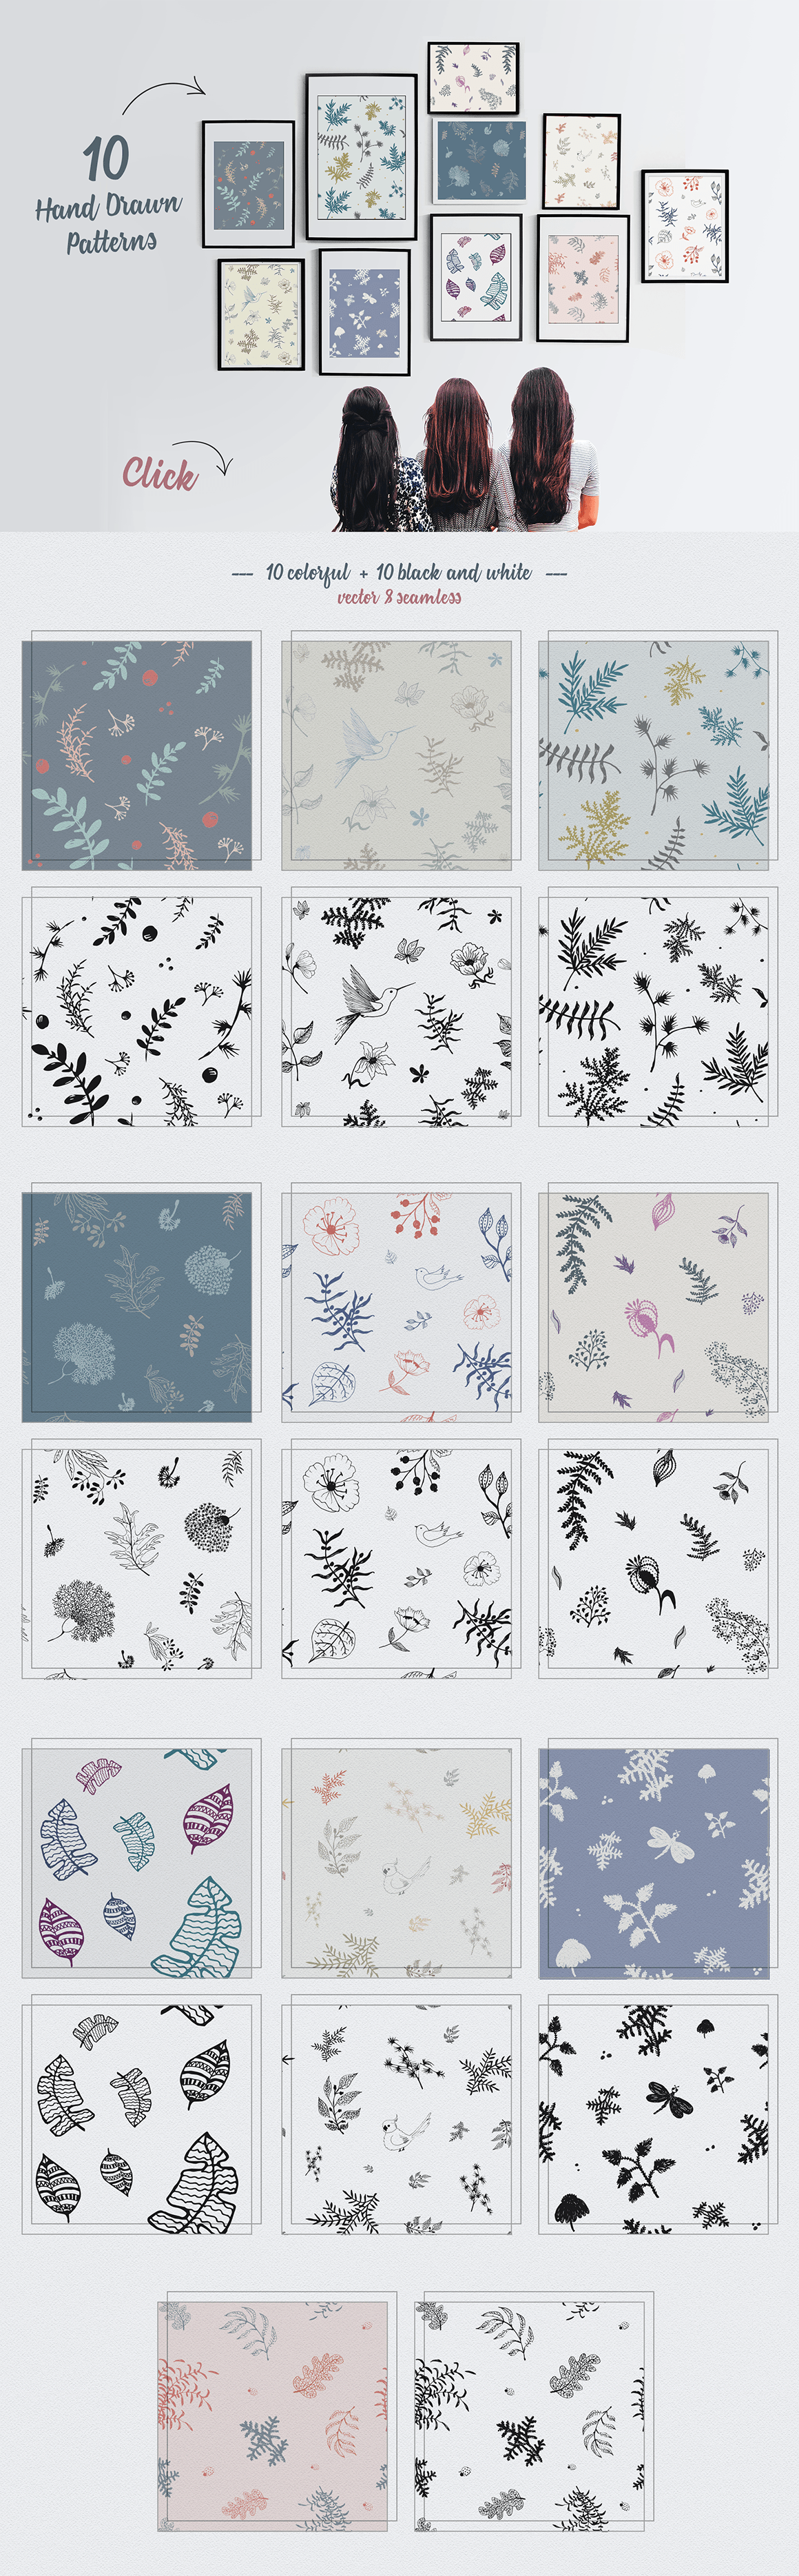 70 Wallpaper Floral Elements and Patterns example image 9